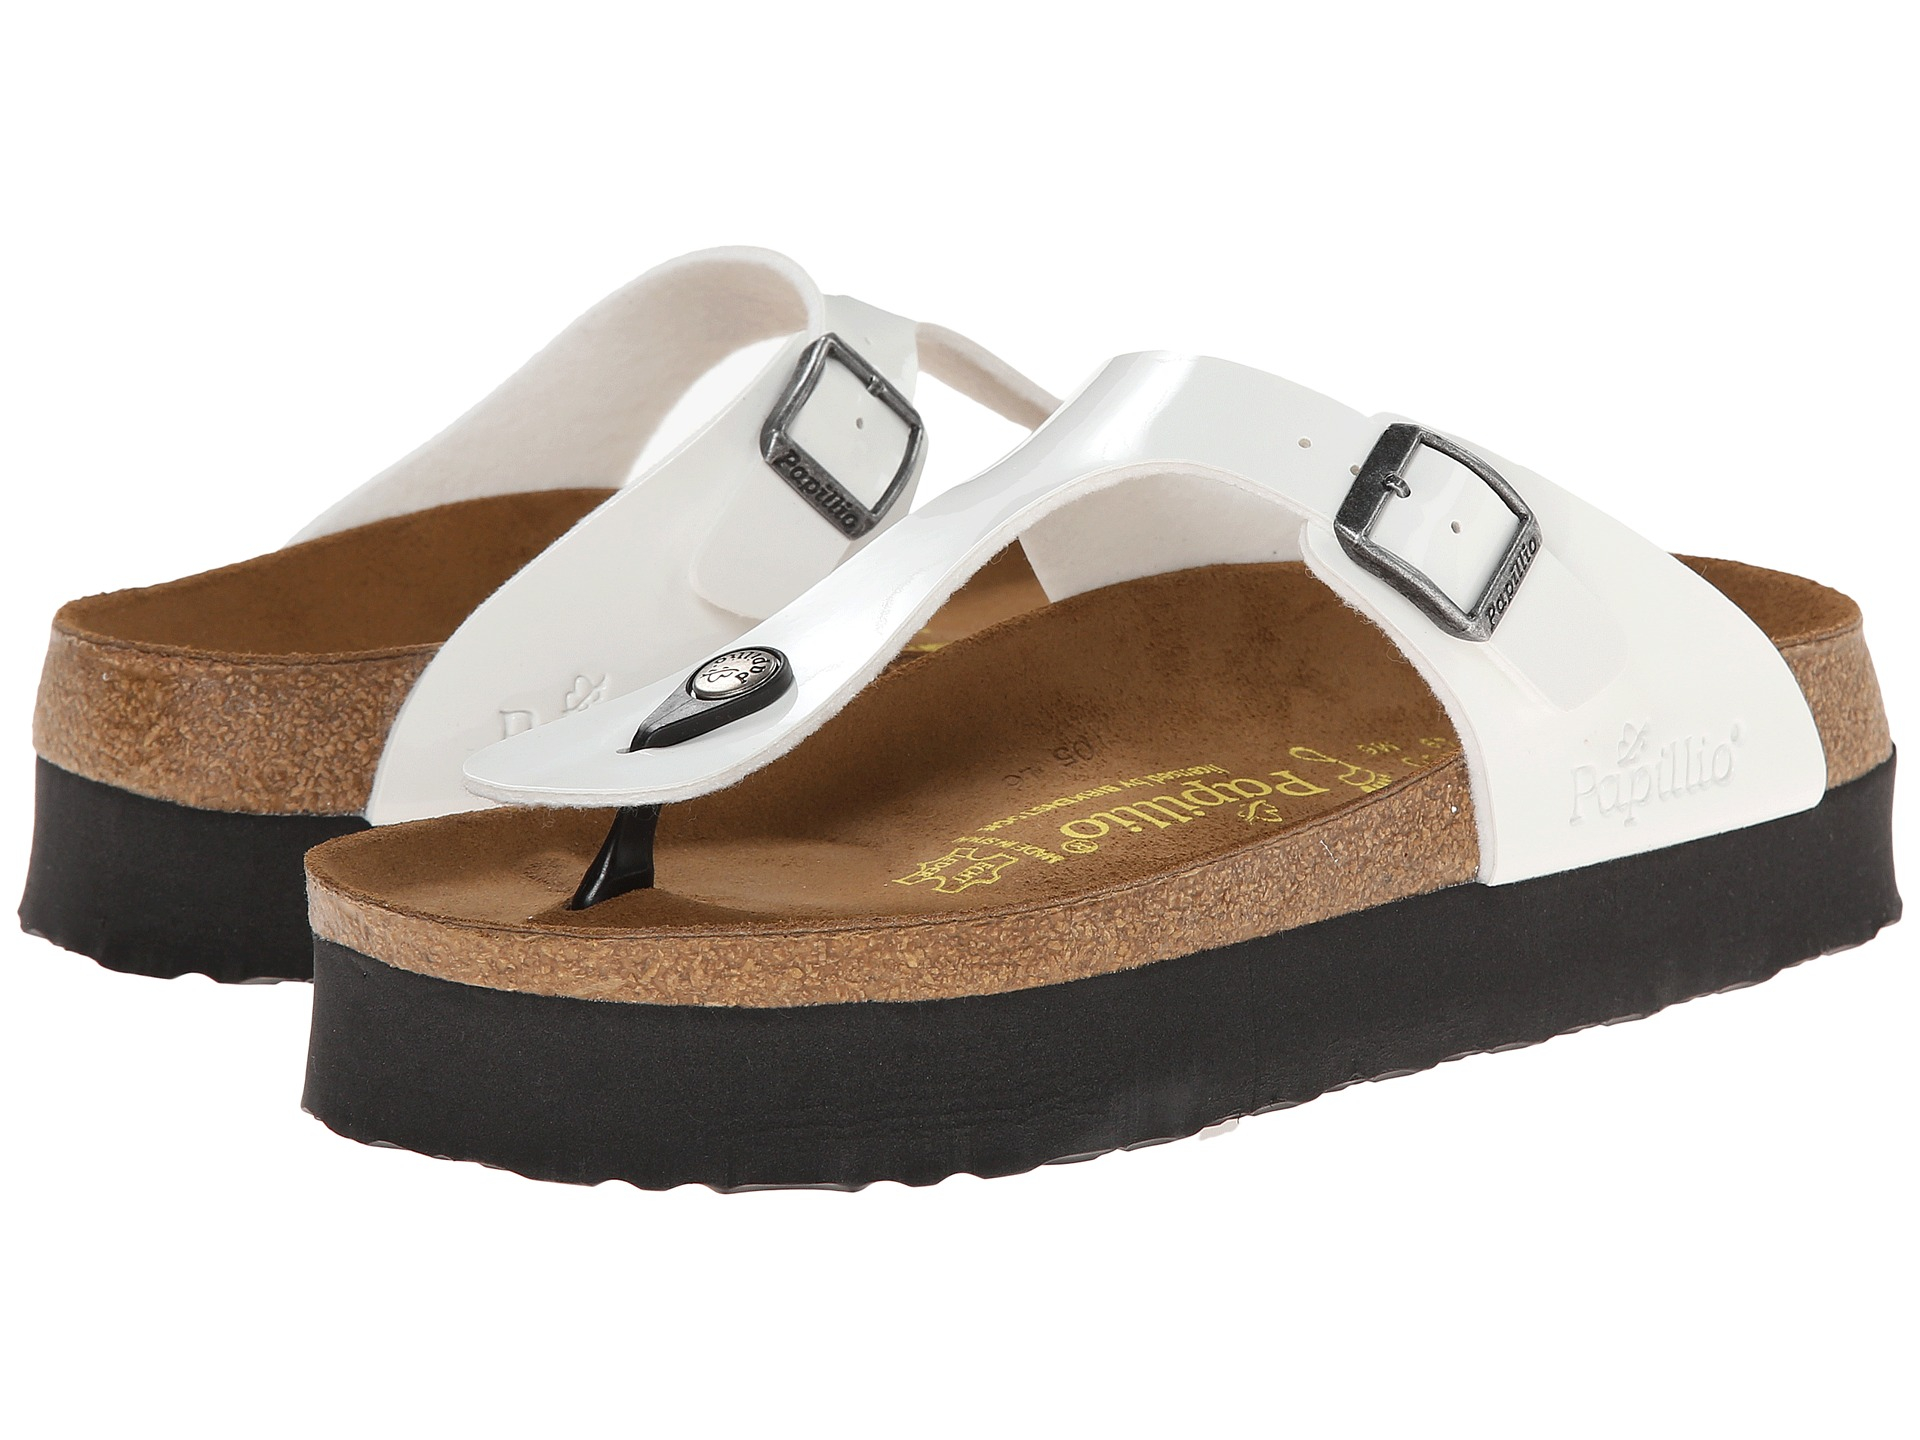 26a21f5b56a Lyst - Birkenstock Gizeh Platform By Papillio in White